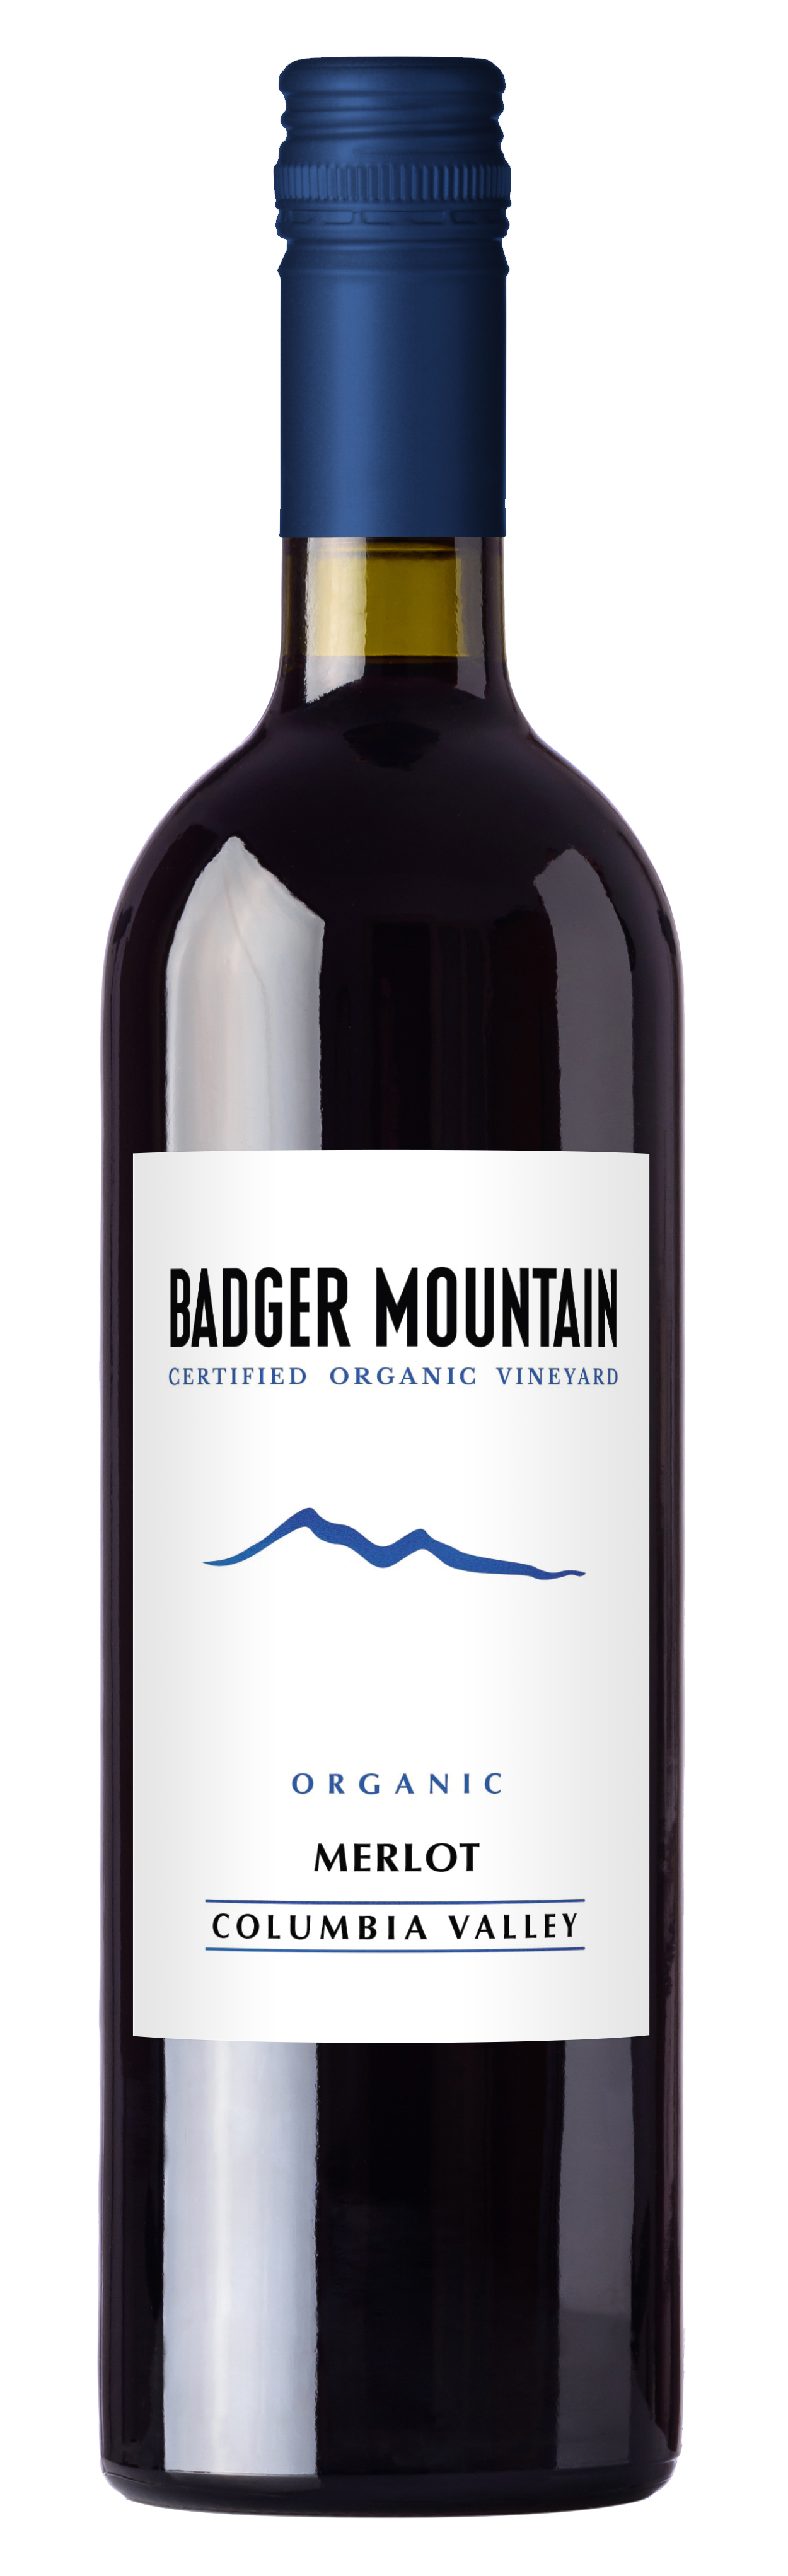 New Release! 2019 Badger Mountain Organic Merlot Photo